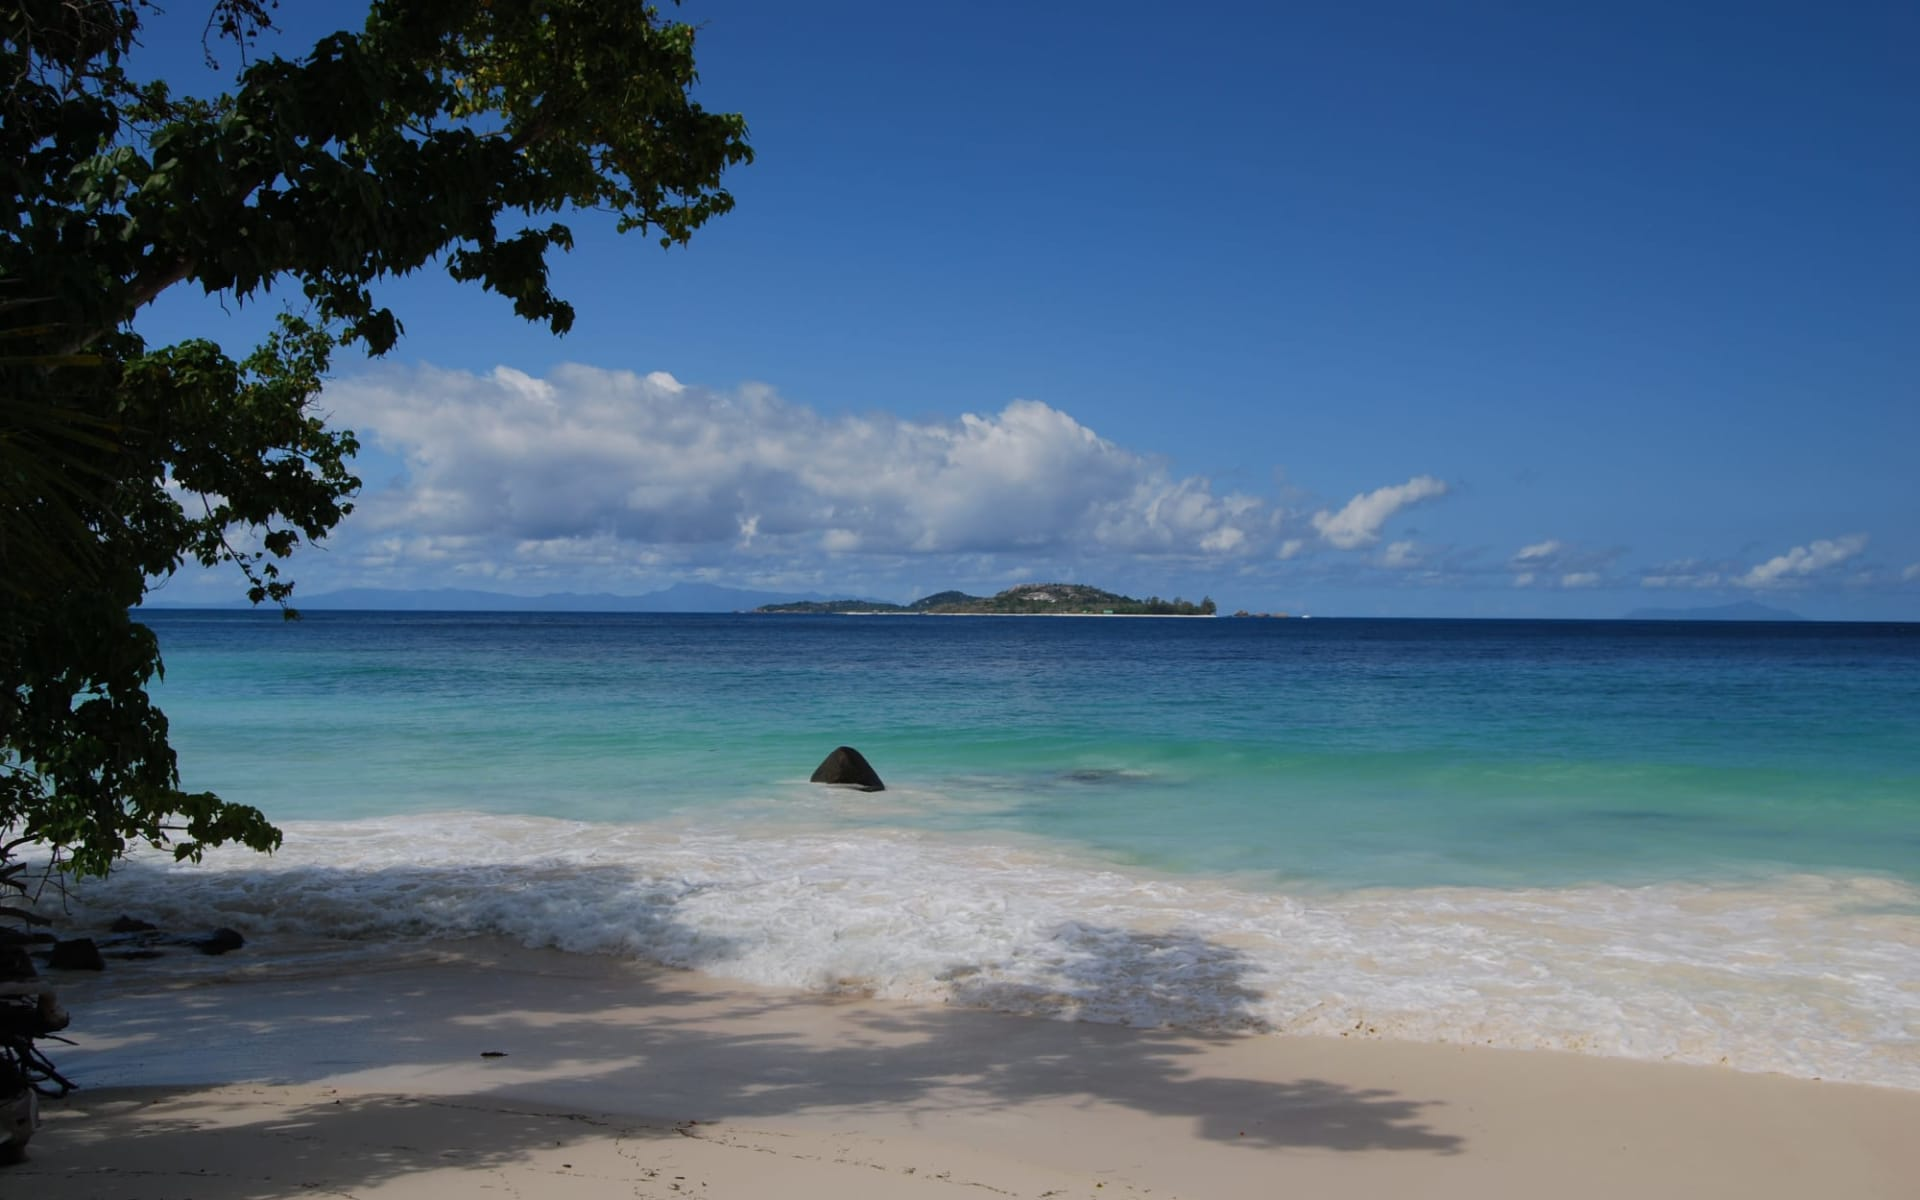 The Islander's Hotel in Praslin: